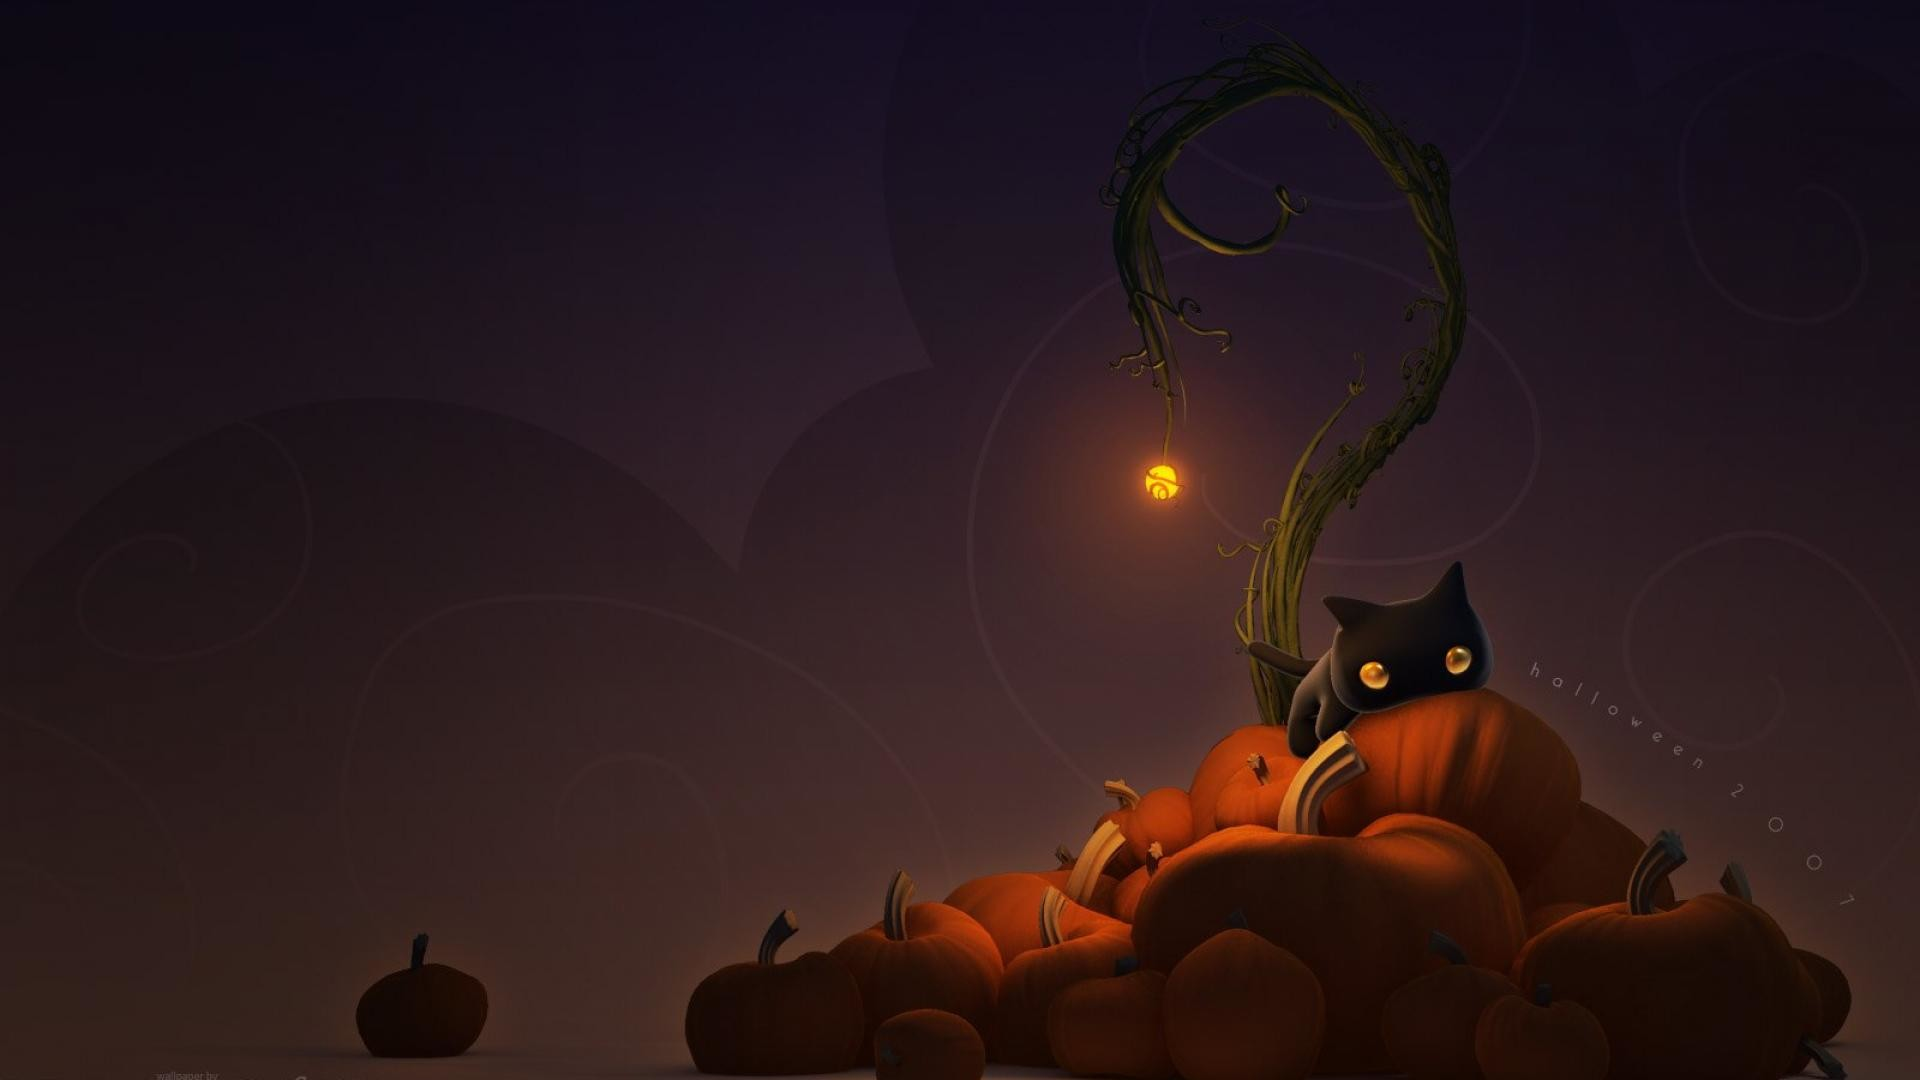 Captivating 1920x1080 Black Cat Pumpkin Halloween Wallpaper #4956 Wallpaper Themes ... Black  Cat Pumpkin